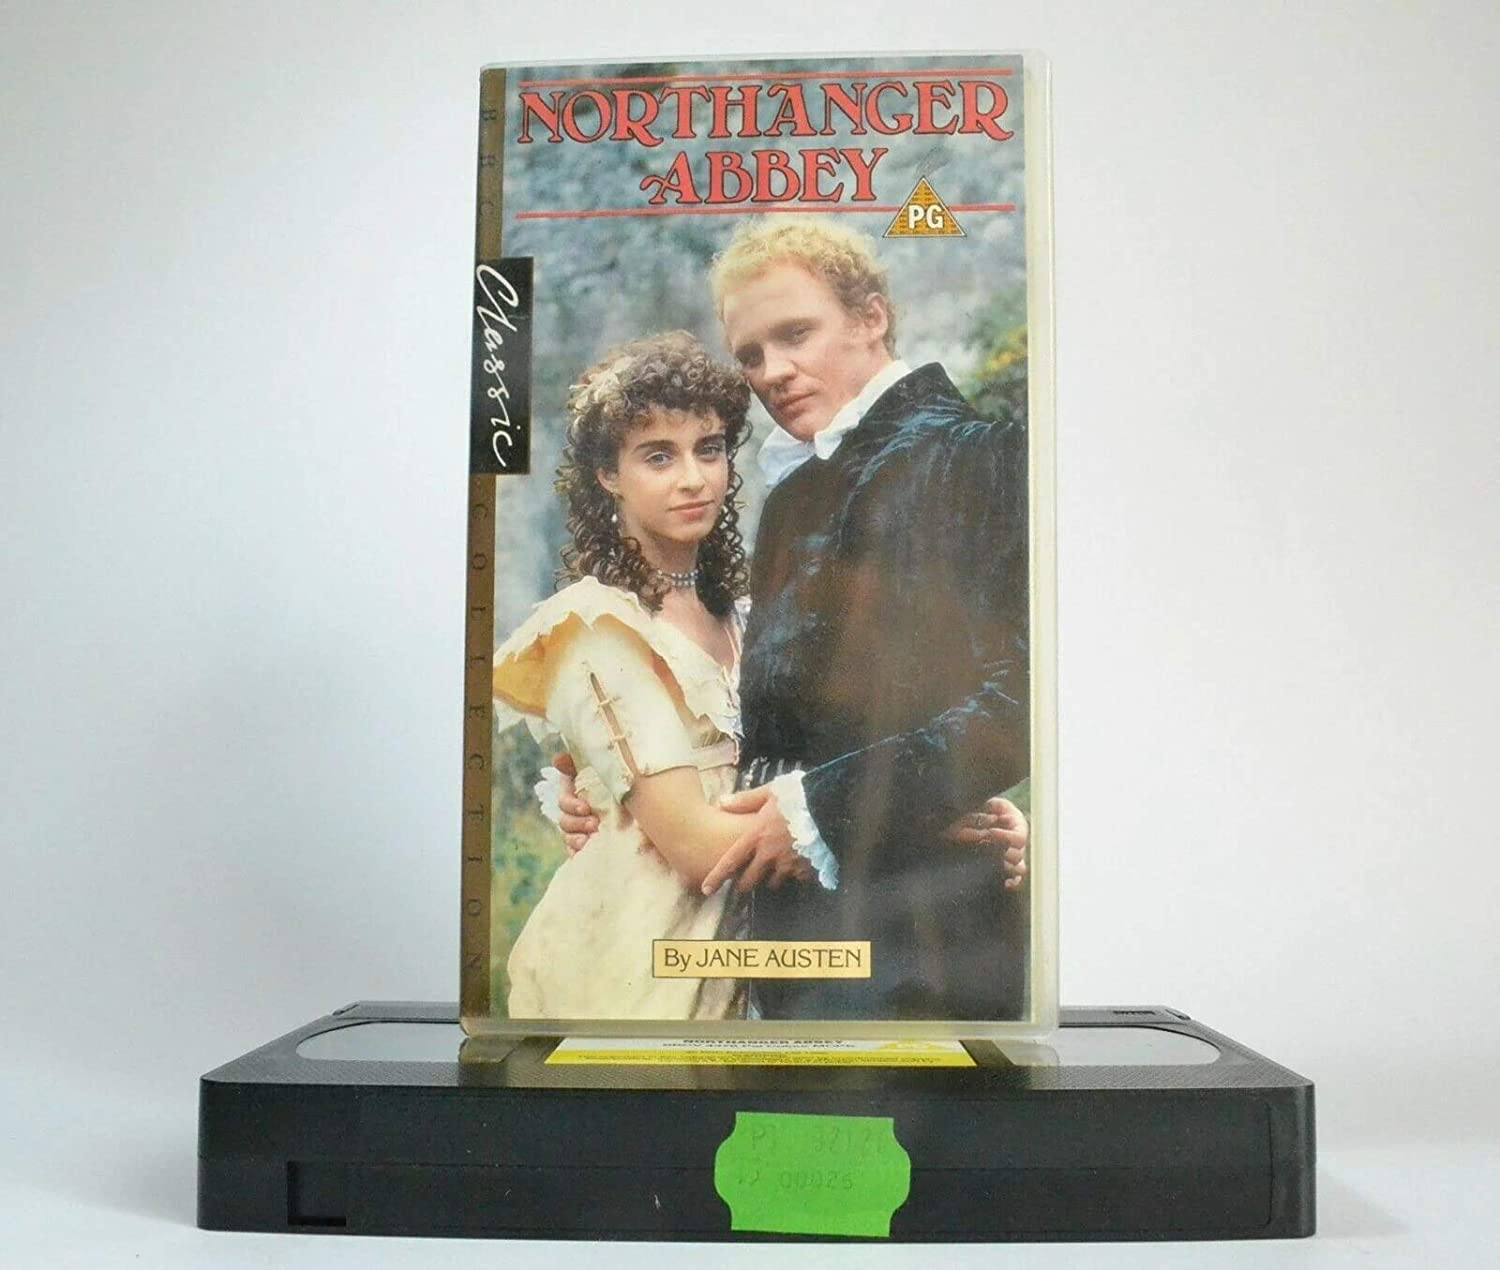 Northanger Abbey [Reino Unido] [VHS]: Amazon.es: Firth, Peter, Withers, Googie, Hardy, Robert, Schlesinger, Abbey, Austen, Jane (Buch), Foster, Giles, Firth, Peter, Withers, Googie: Cine y Series TV